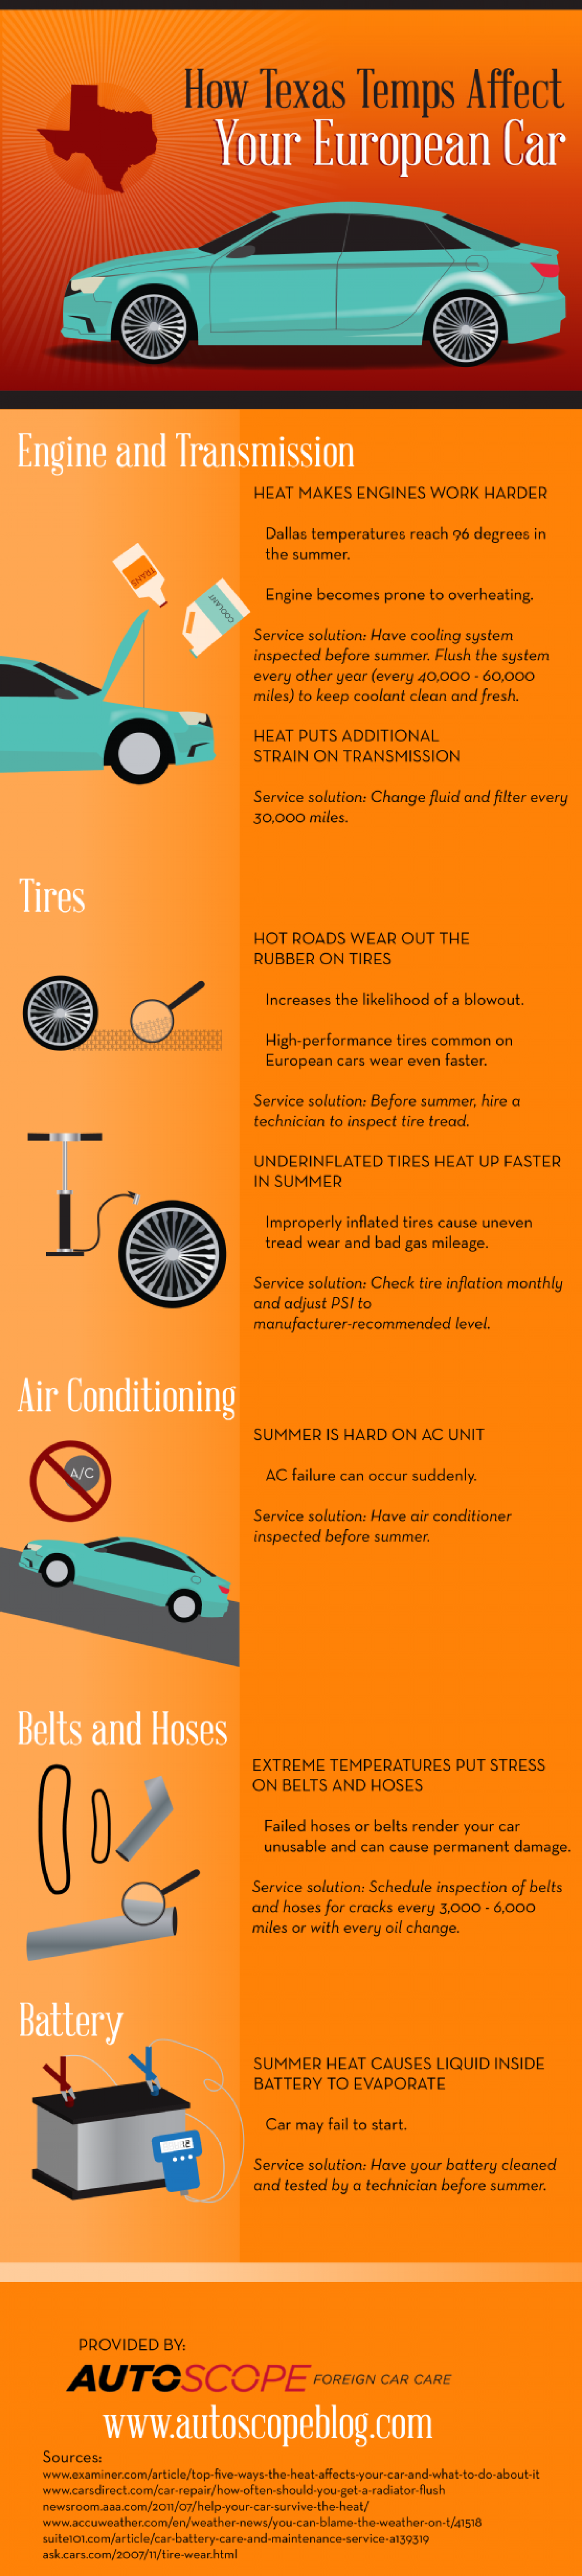 Why You Should Never Ignore Your Vehicle's Check Engine Light Infographic